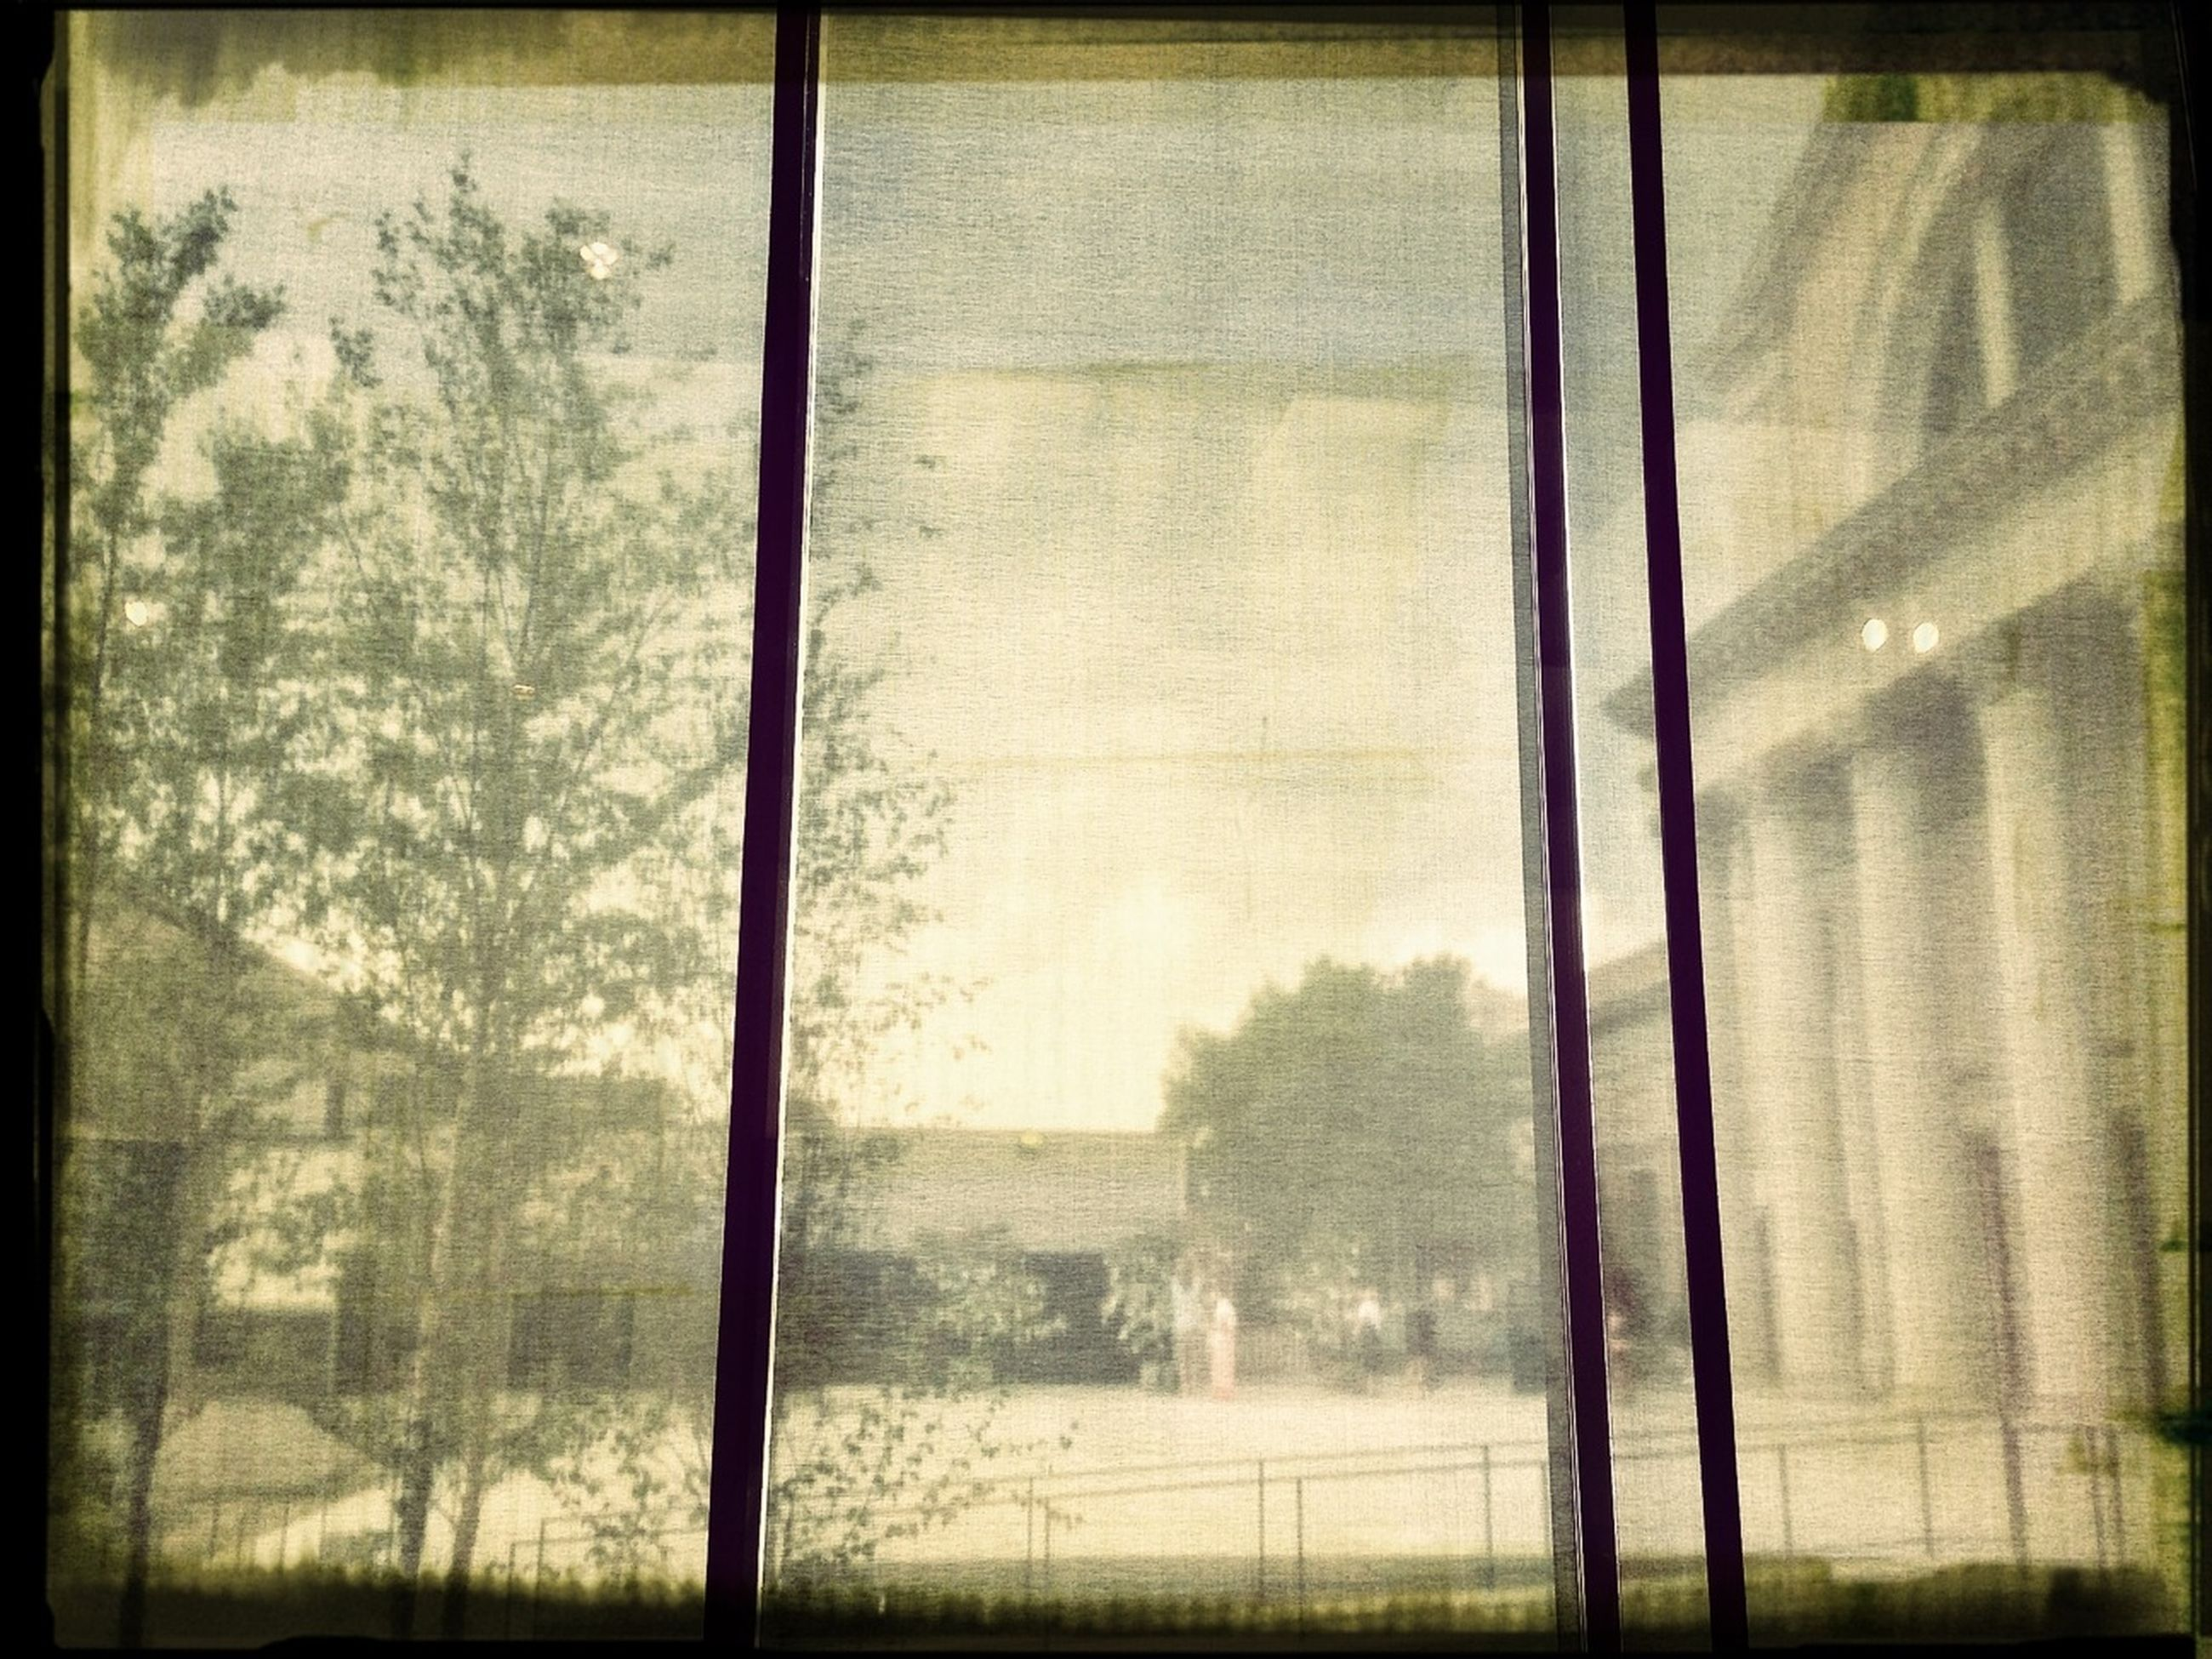 window, glass - material, transparent, indoors, built structure, tree, architecture, fog, auto post production filter, weather, transfer print, looking through window, reflection, glass, day, full frame, no people, building exterior, rain, foggy